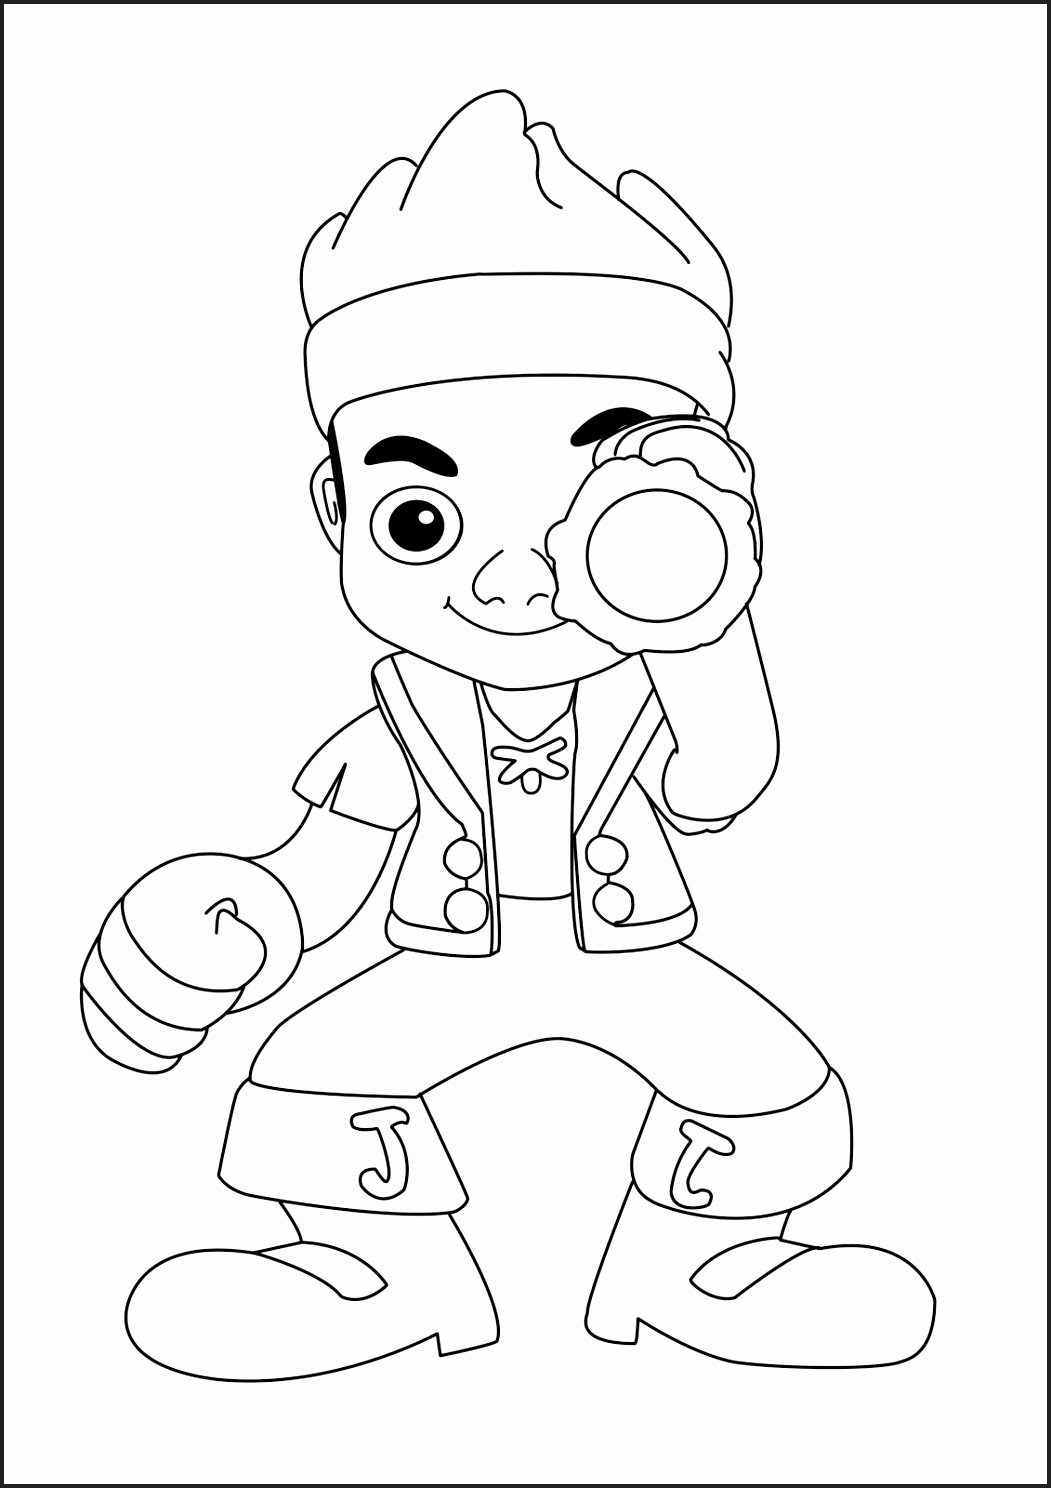 pirate coloring pages for preschool pirate coloring pages for preschool at getcoloringscom pirate pages coloring for preschool